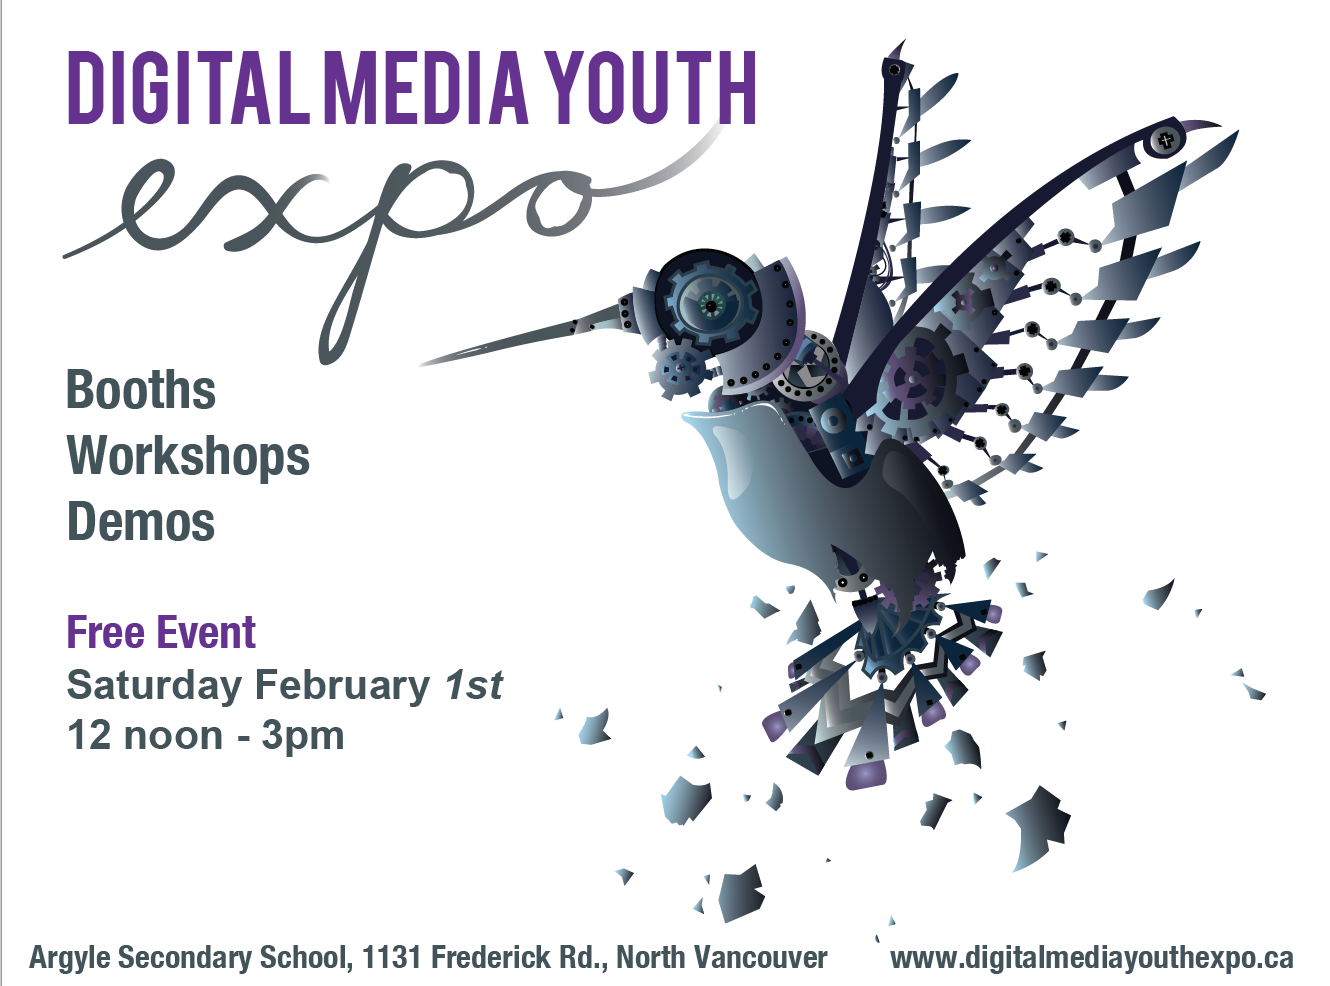 An Interactive Experience for Those Interested In All Things Digital Media!